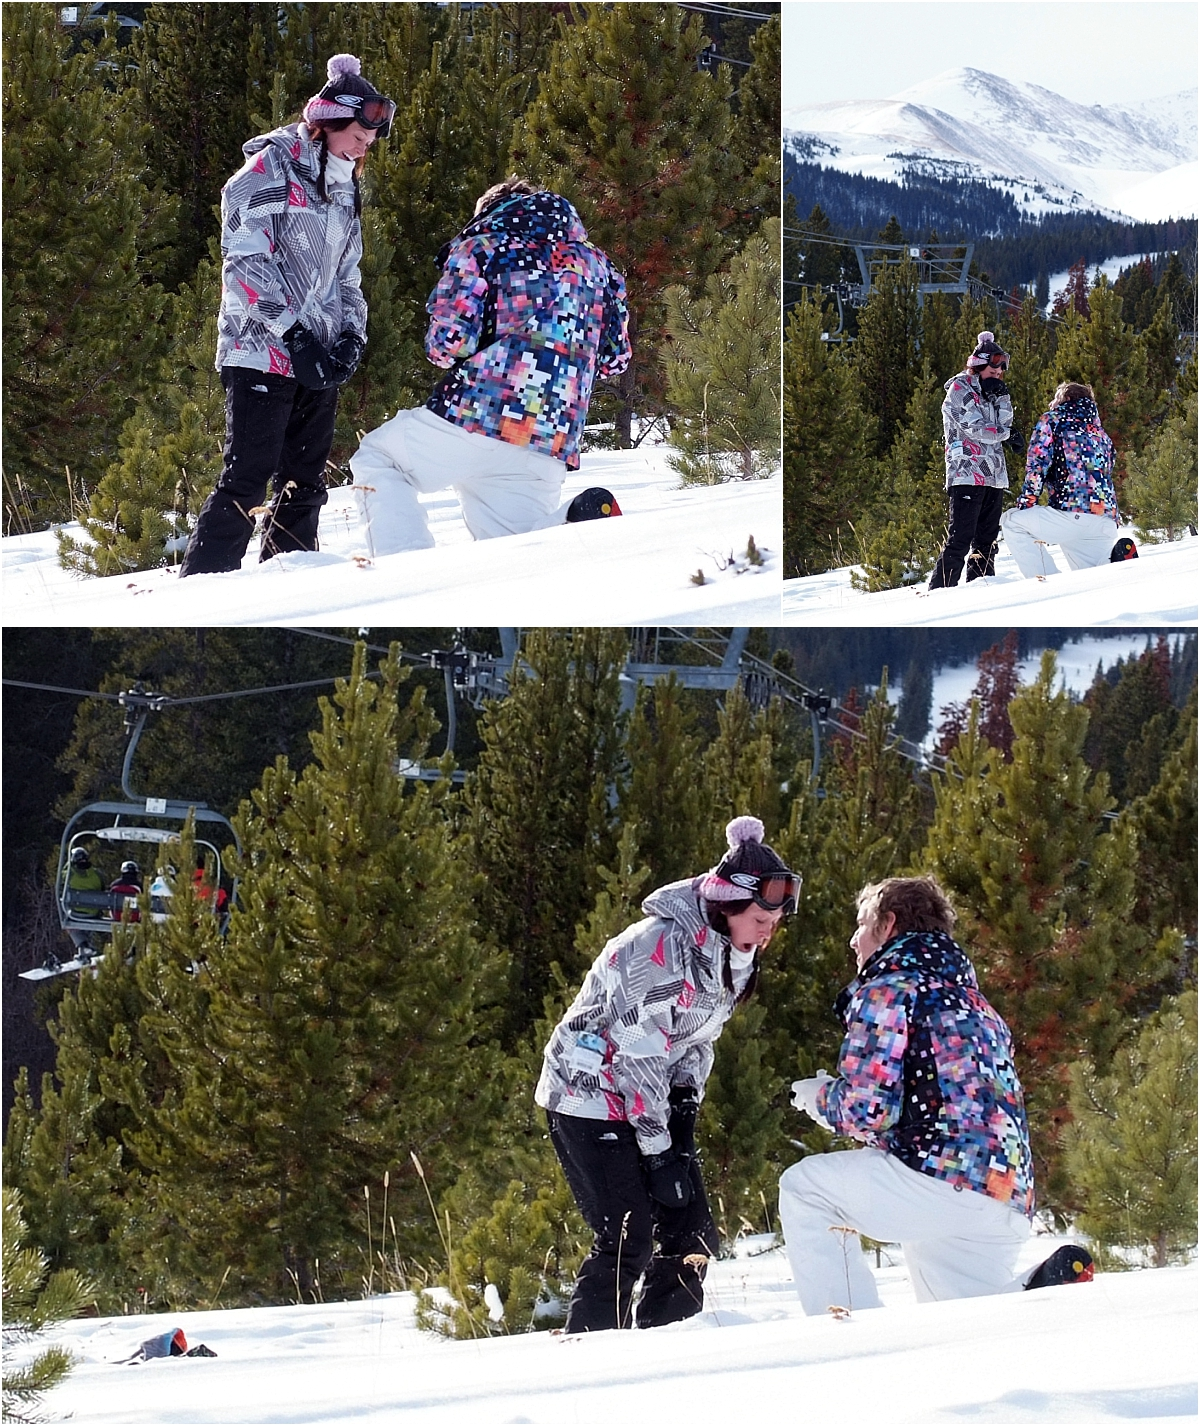 she said yes, down on one knee, will you marry me, winter snowboarding proposal, beaver run resort, surprise proposal, colorado photographer, proposal photography, mountain wedding photographer, summit county, colorado snowboarding proposal